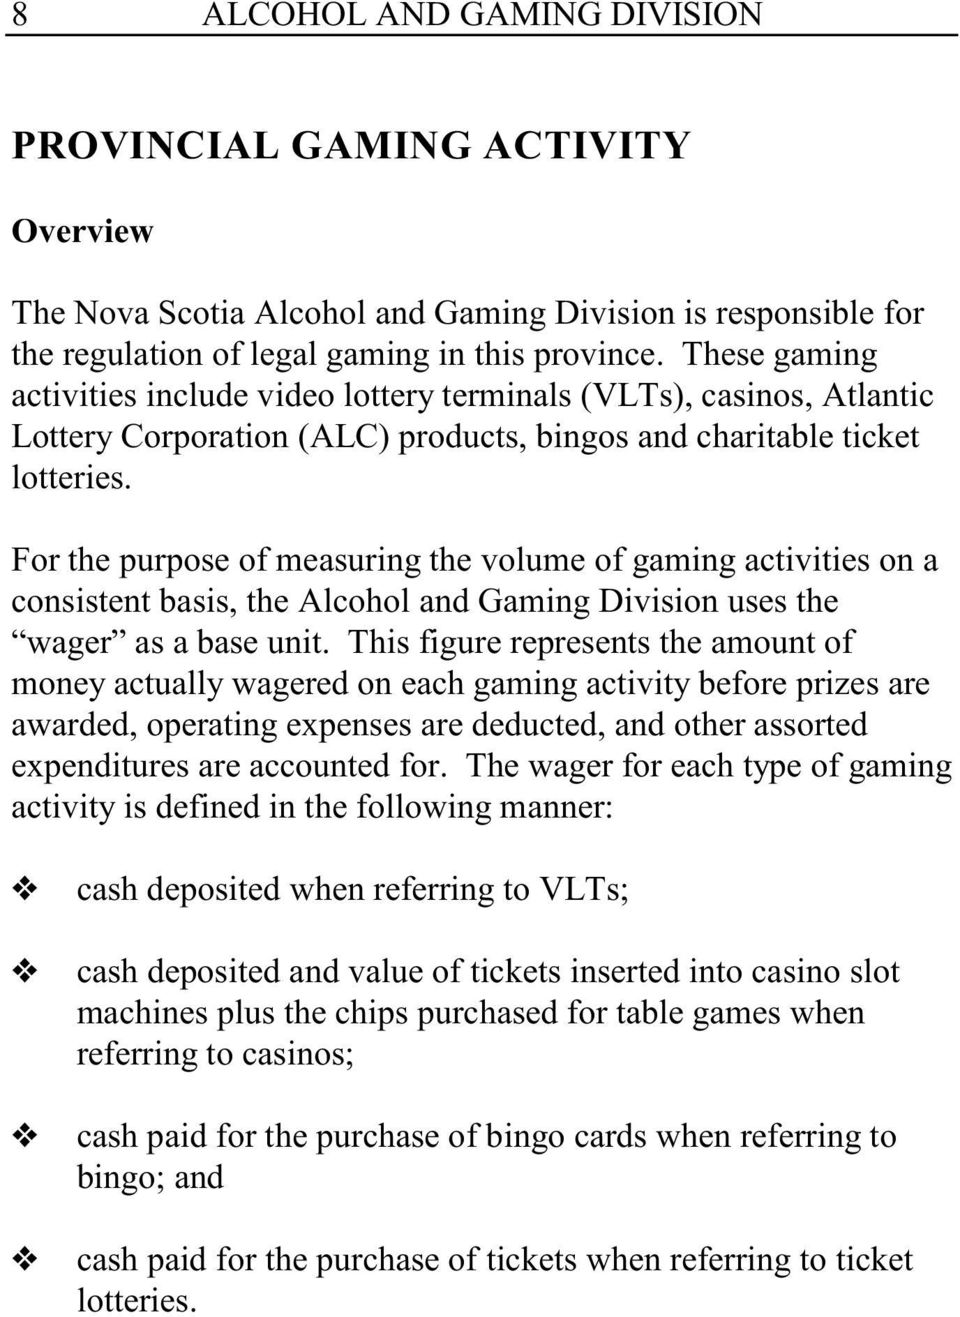 For the purpose of measuring the volume of gaming activities on a consistent basis, the Alcohol and Gaming Division uses the wager as a base unit.